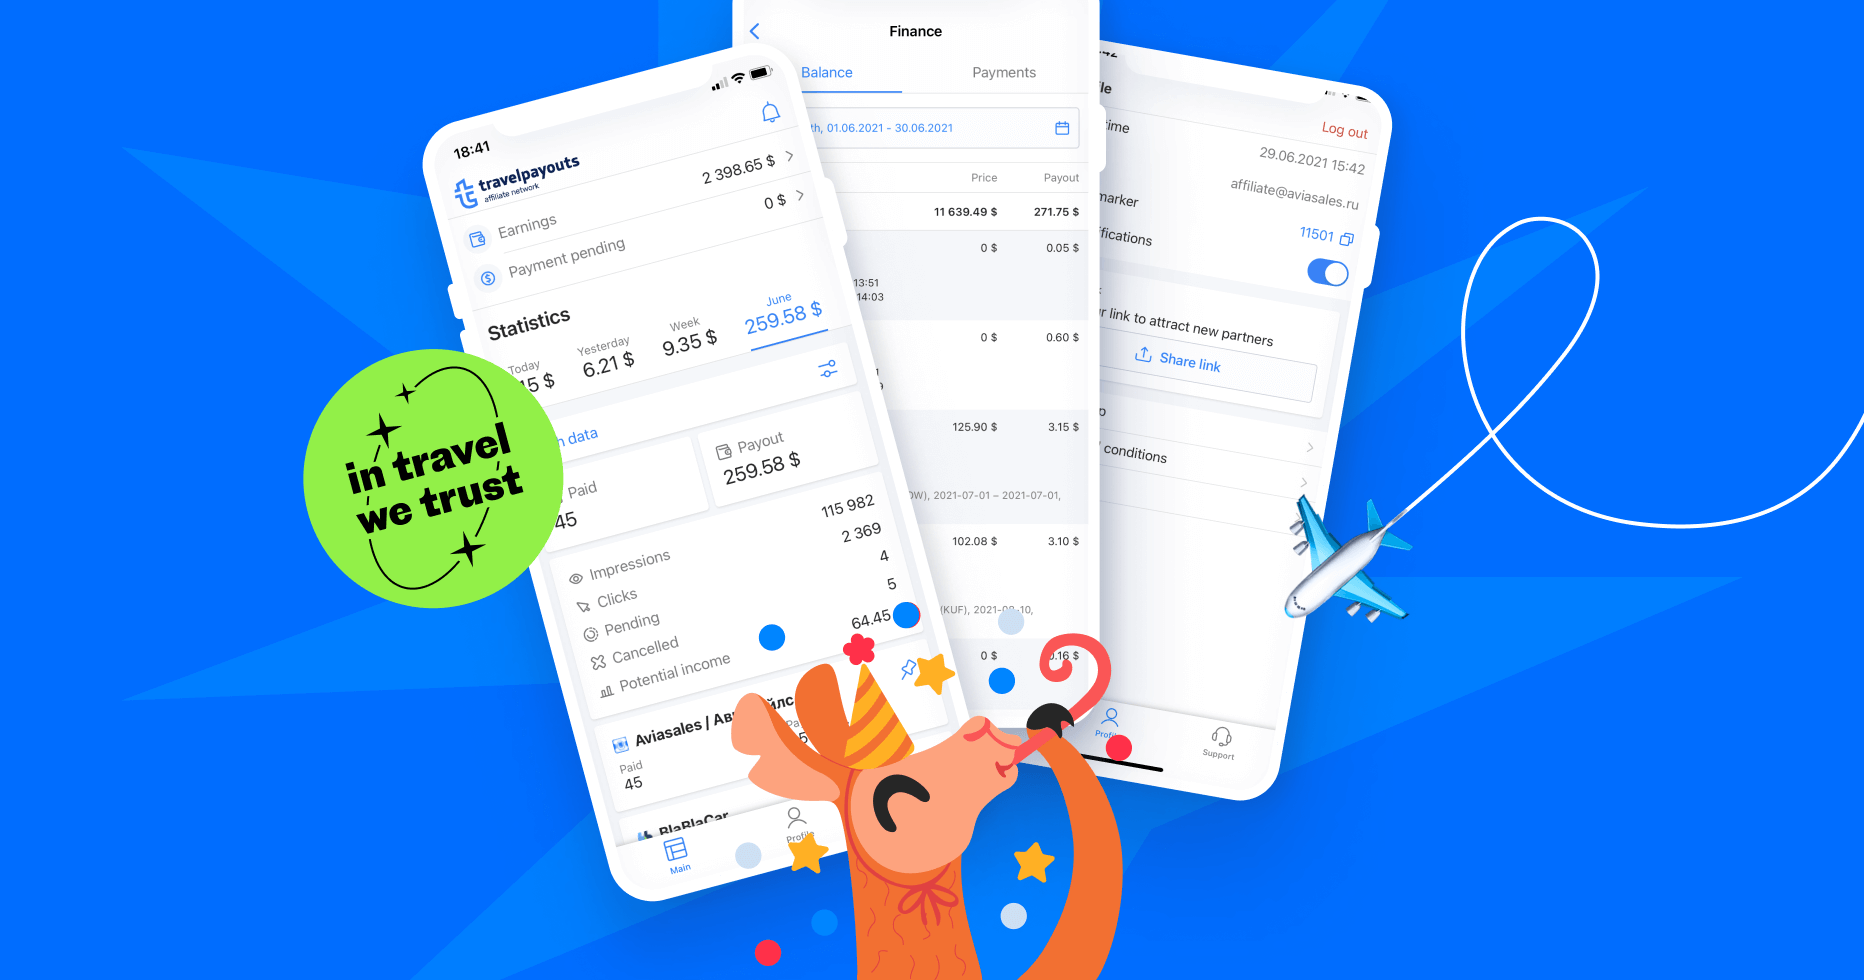 What's new in the updated Travelpayouts application?